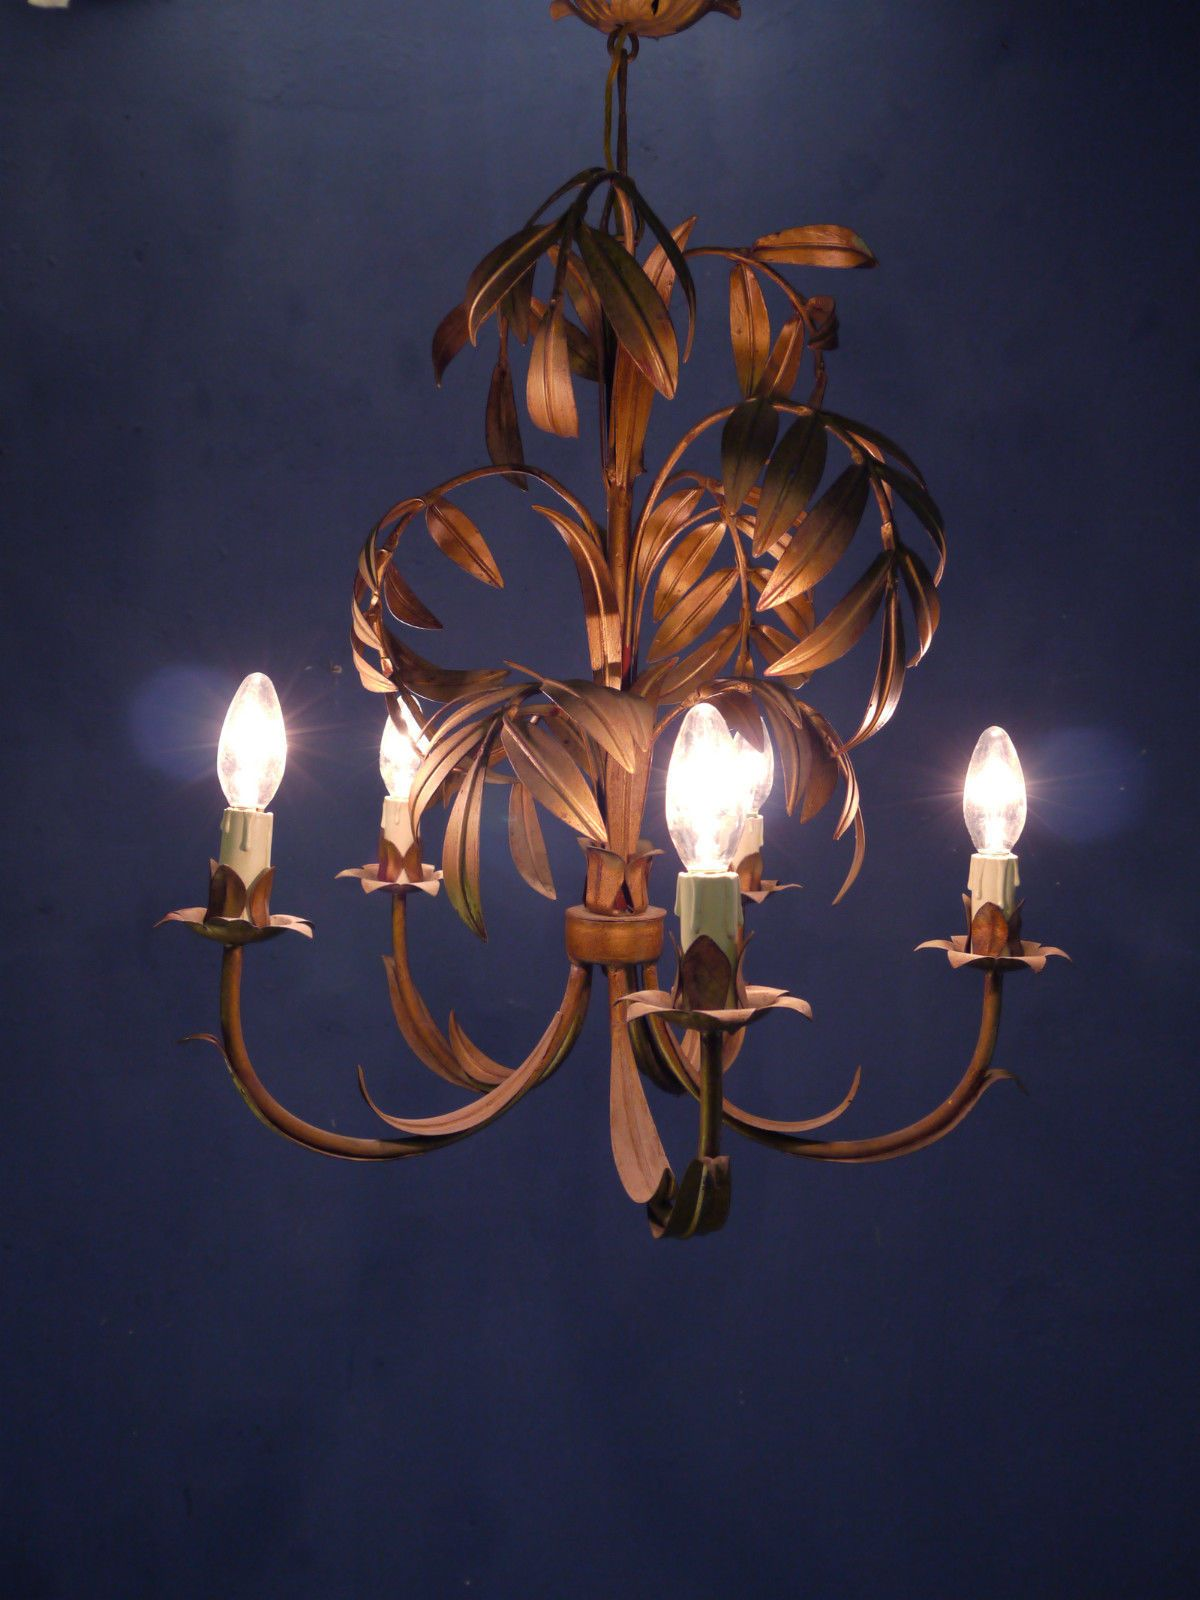 Vintage italian 1960s gilt tole chandelier palm leaves hollywood vintage italian 1960s gilt tole chandelier palm leaves hollywood regency era ebay arubaitofo Image collections